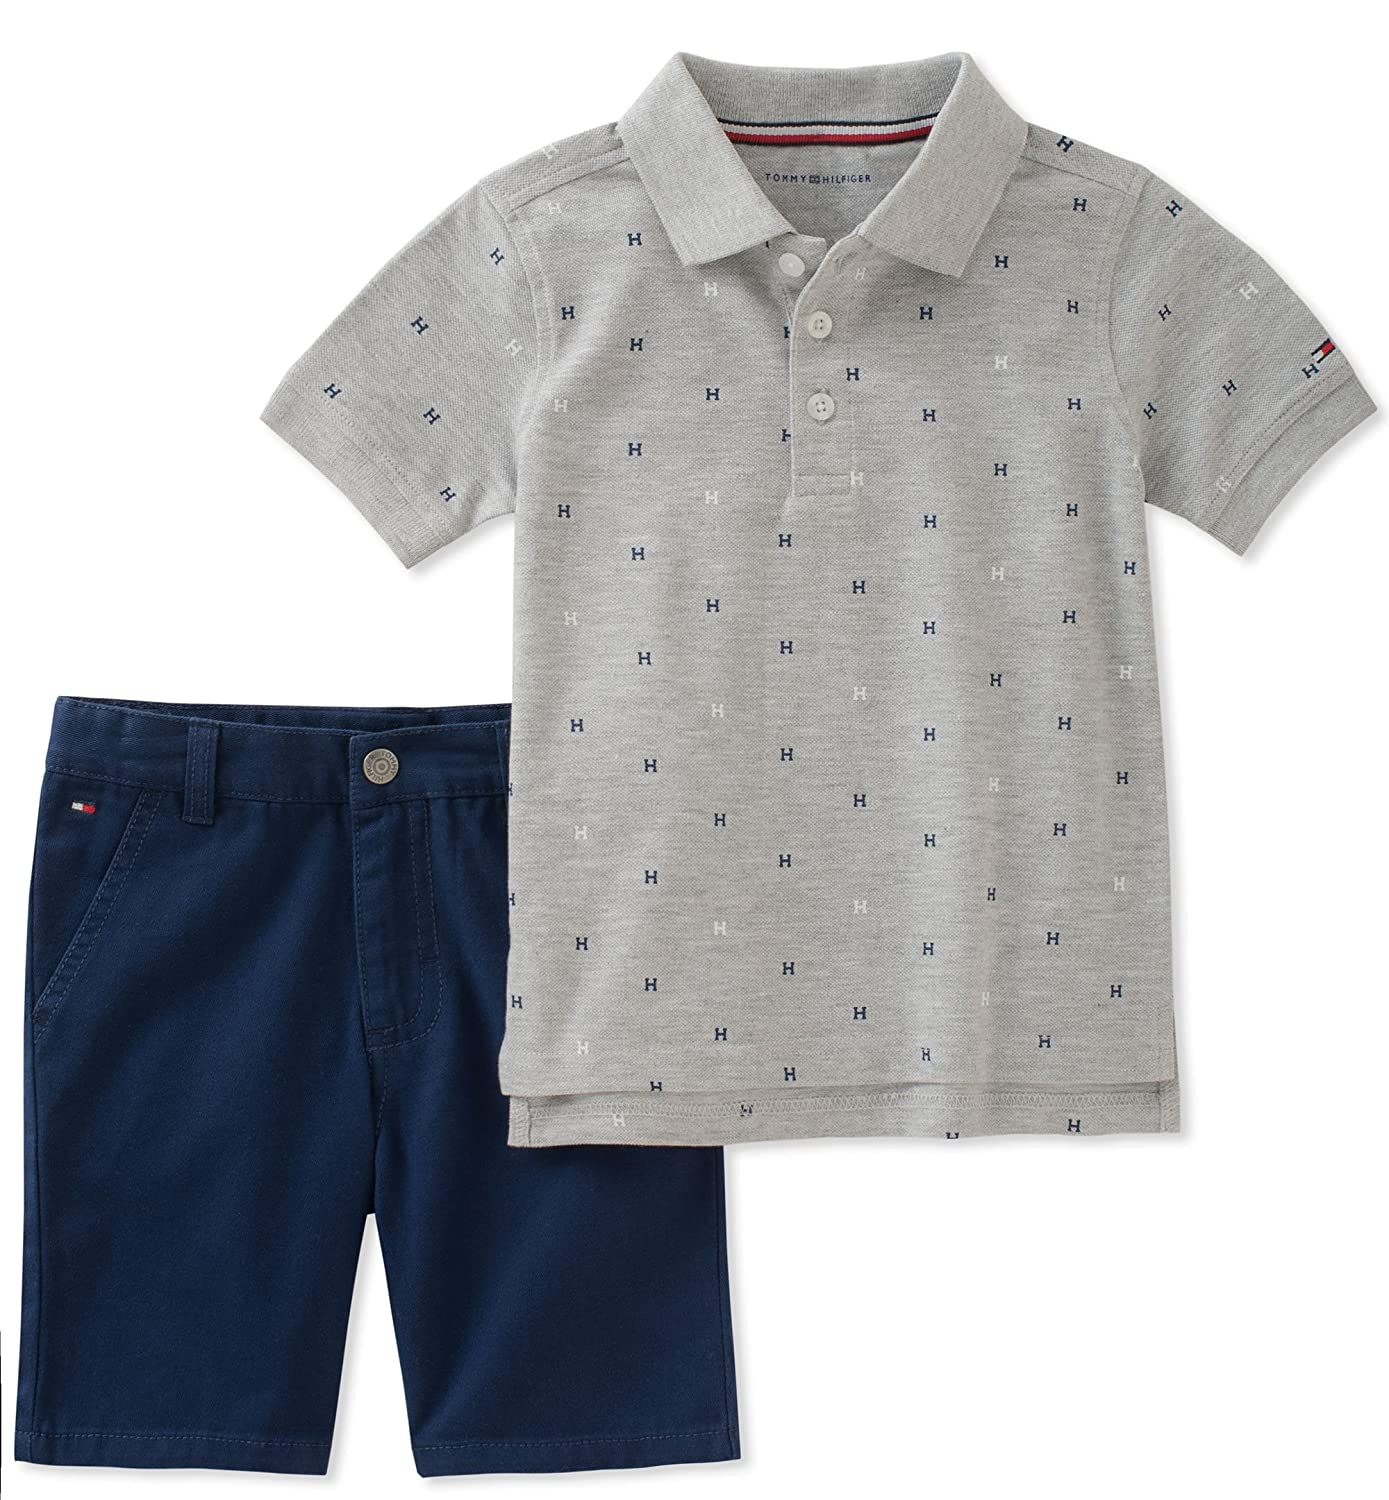 Tommy Hilfiger Boys' 2 Pieces Polo Shorts Set